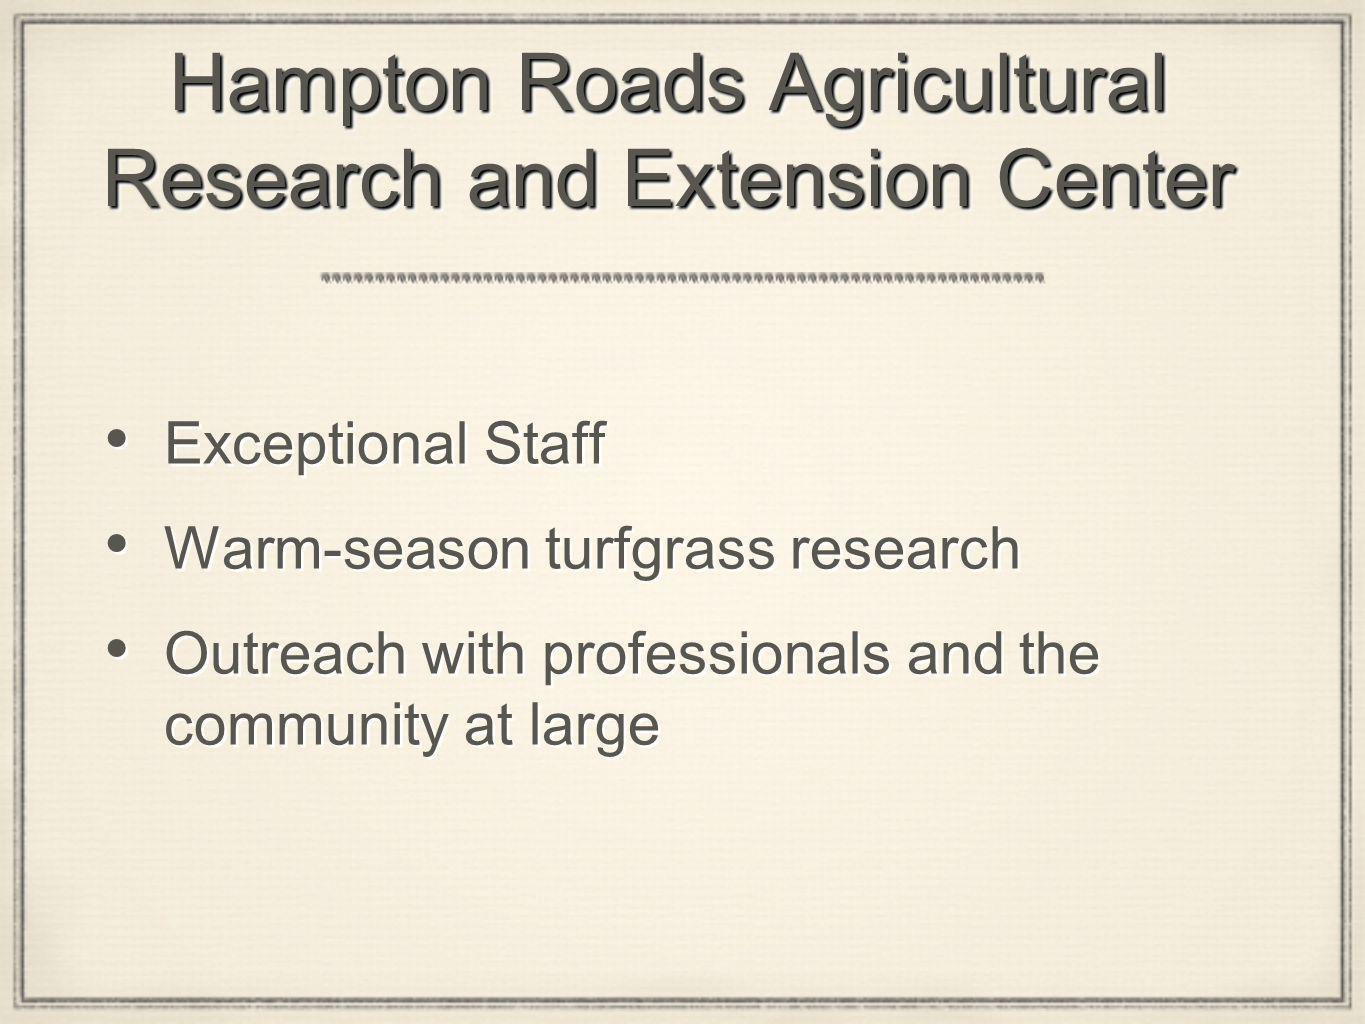 Hampton Roads Agricultural Research and Extension Center Exceptional Staff Warm-season turfgrass research Outreach with professionals and the community at large Exceptional Staff Warm-season turfgrass research Outreach with professionals and the community at large